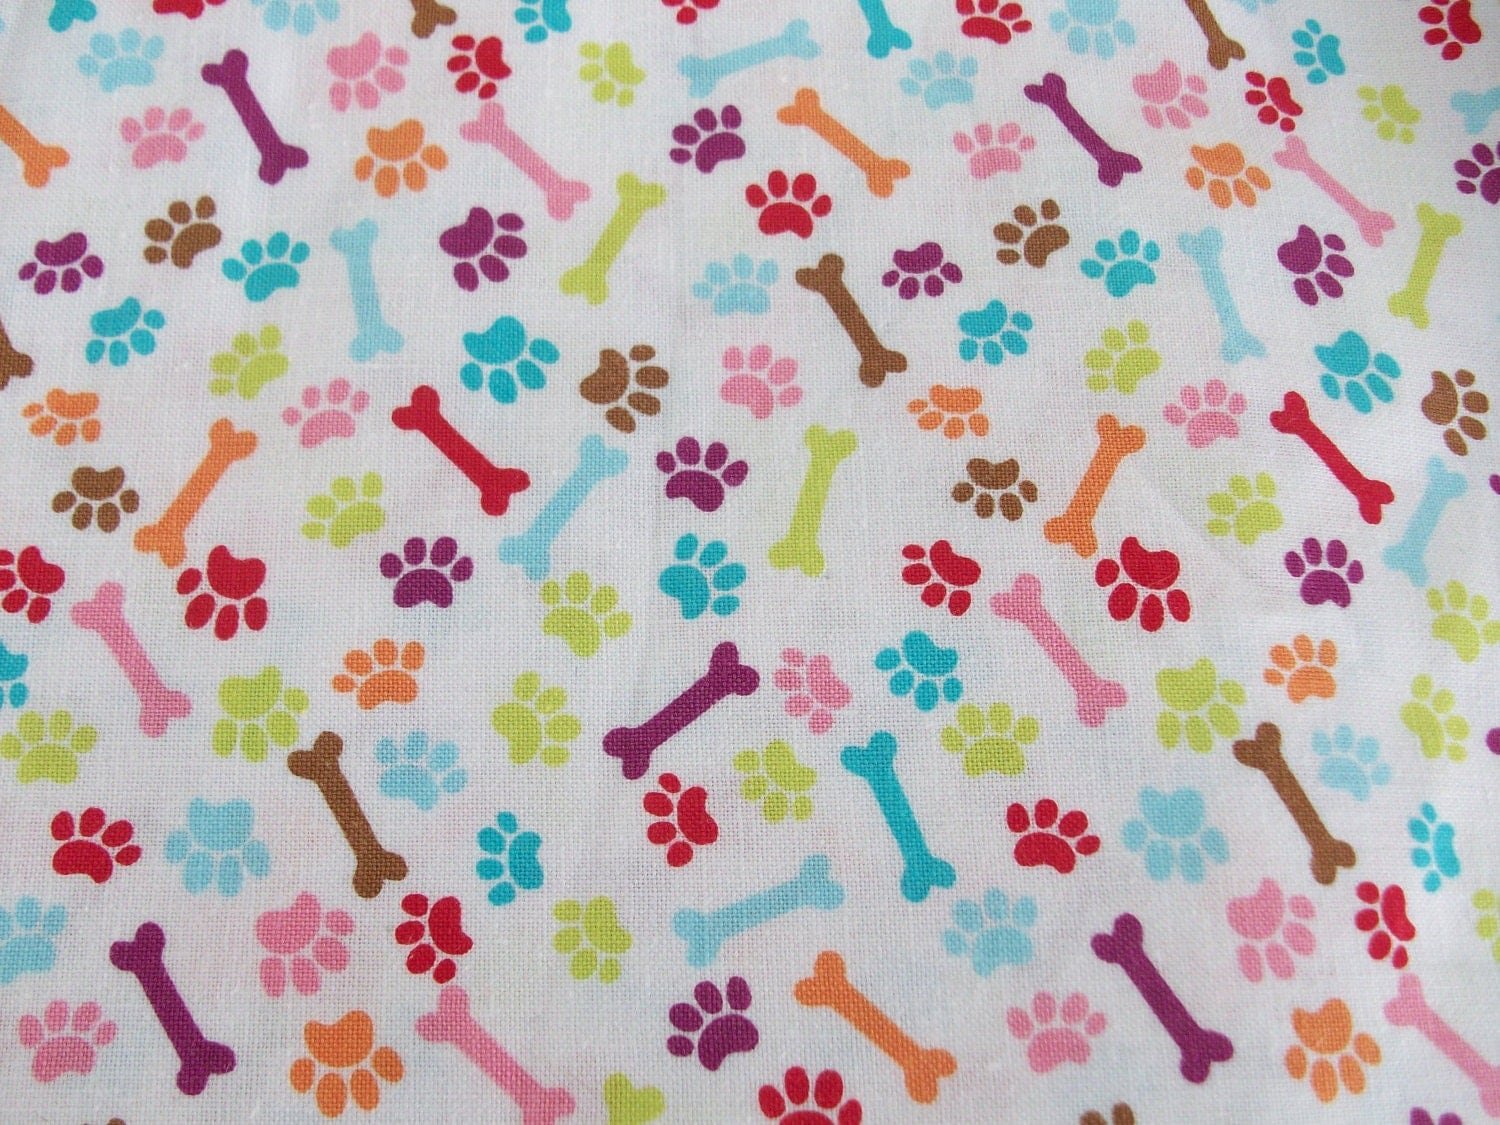 Paw Print And Dog Bone Cotton Fabric 1 2 Yard